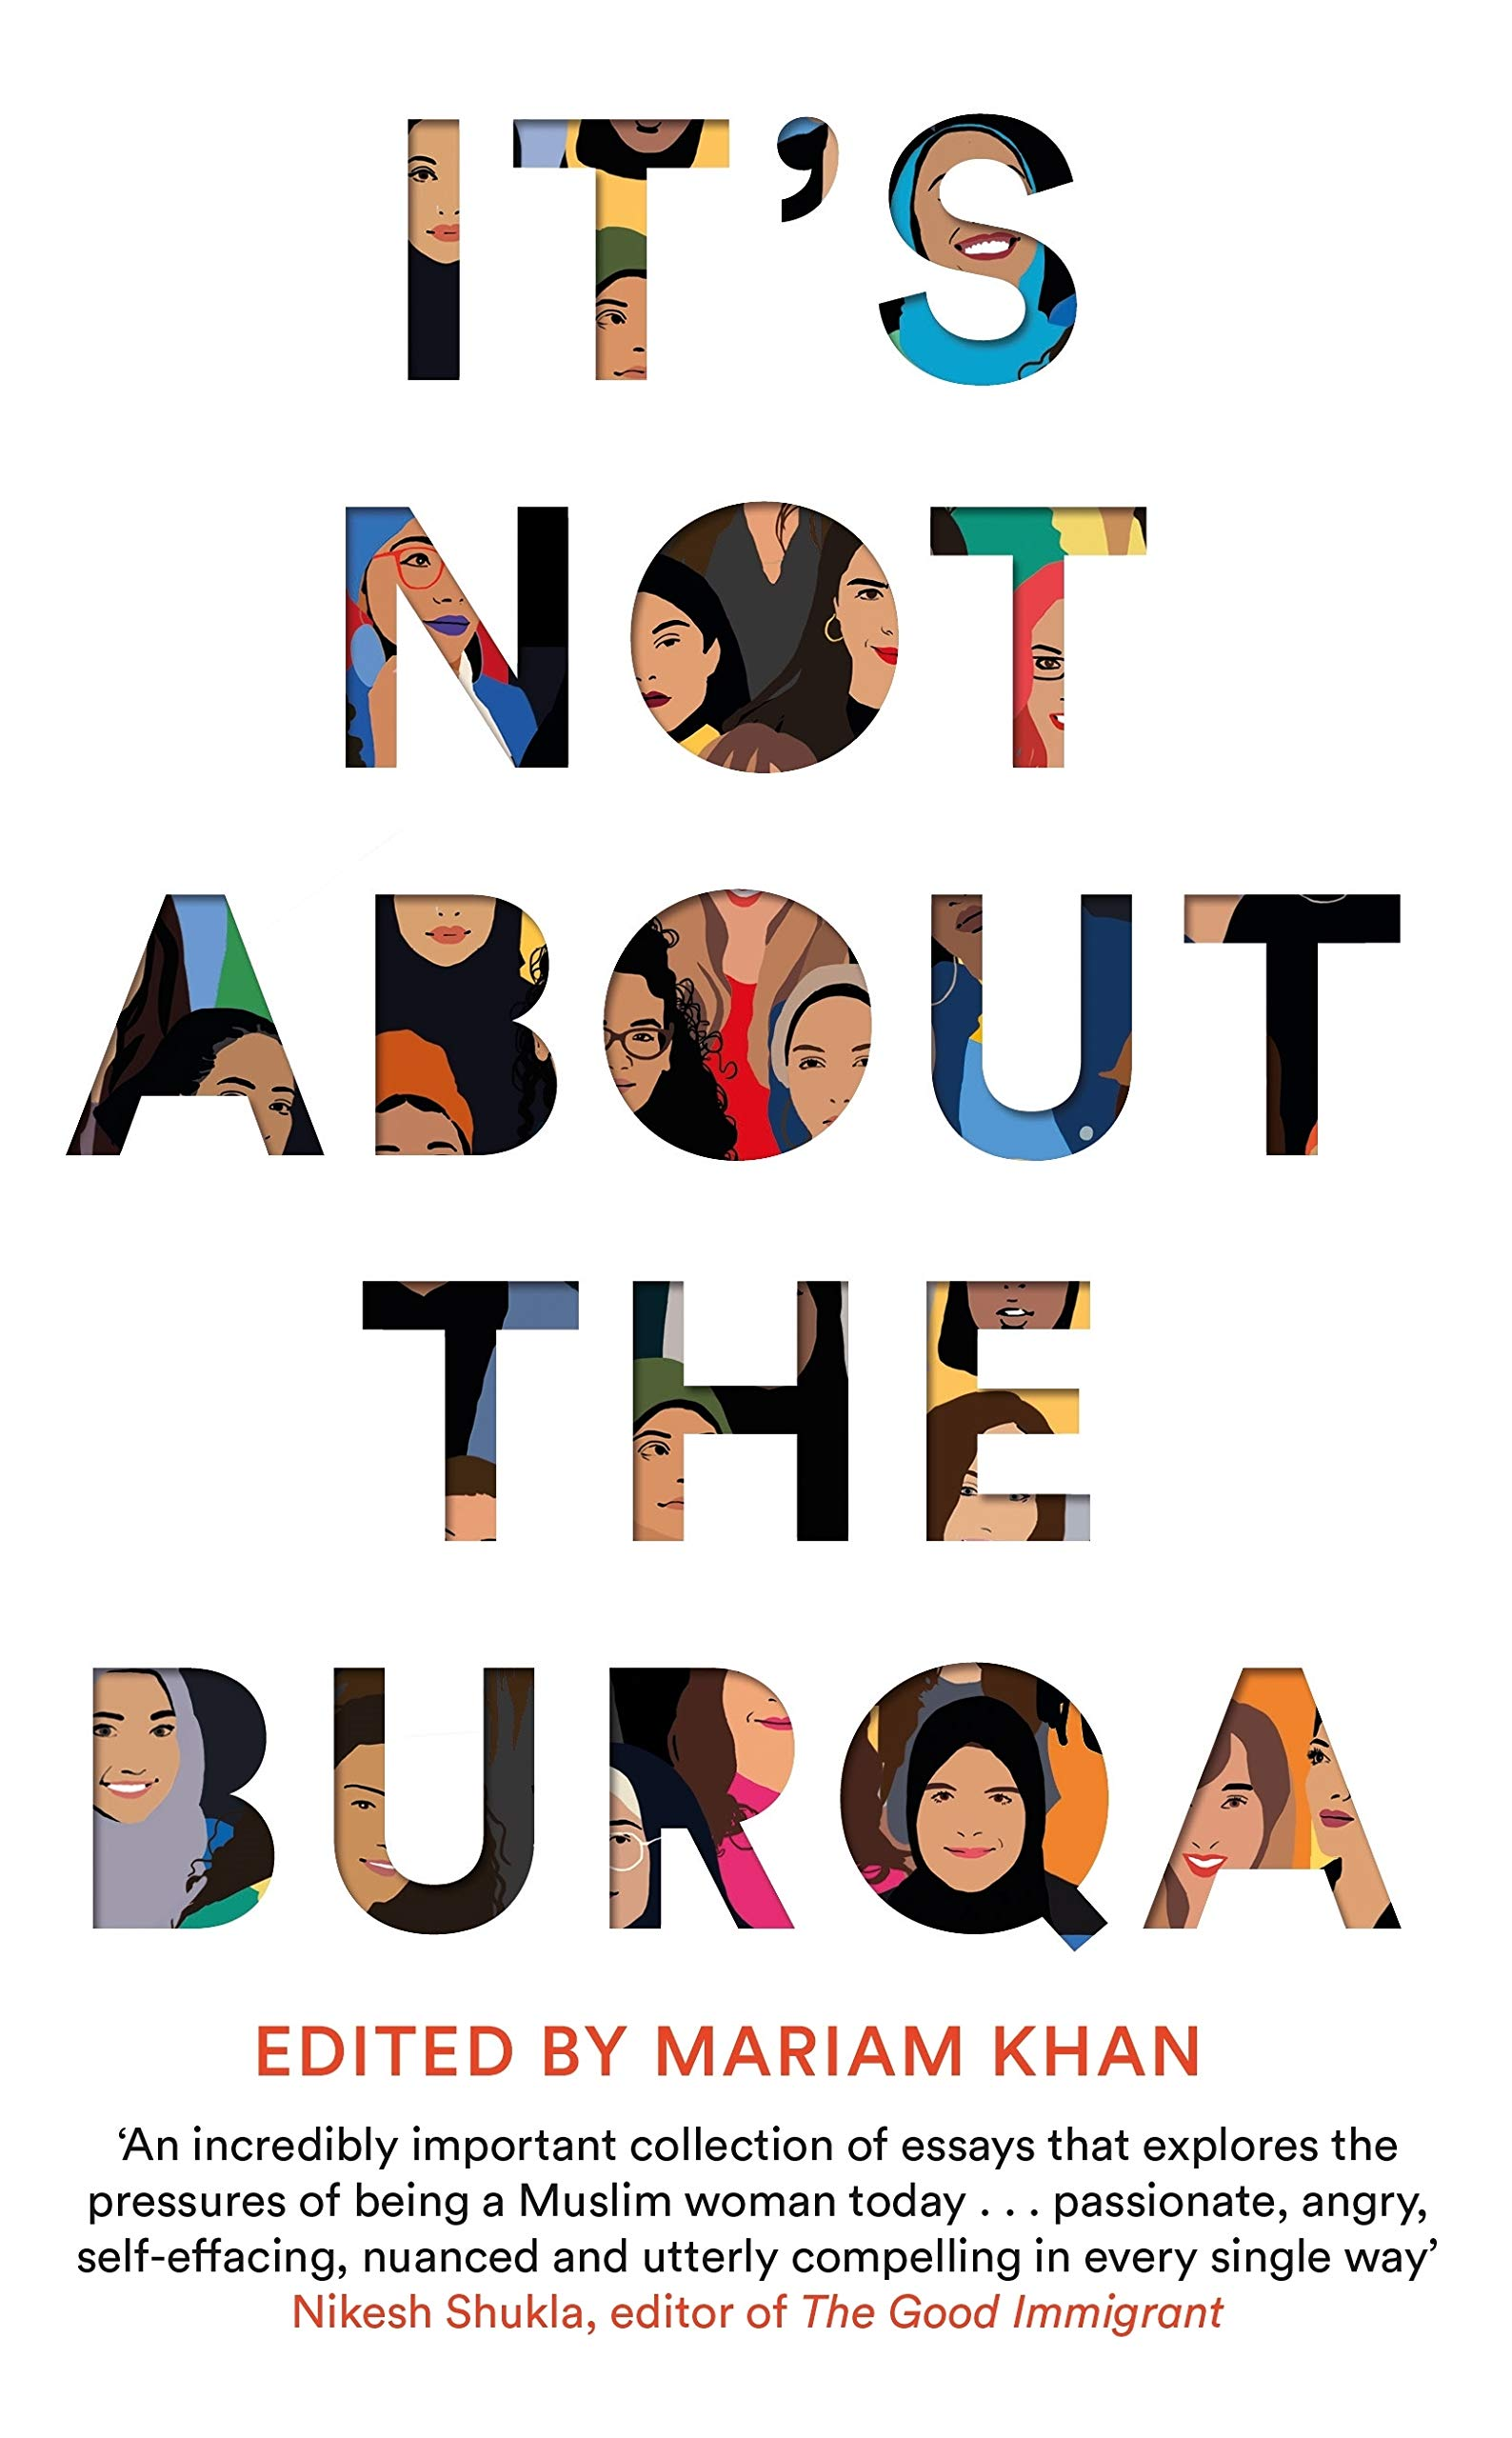 Featured Book - It's Not About the Burqa: Muslim Women on Faith, Feminism, Sexuality and Race, edited by Mariam Khan (Picador, 2019)